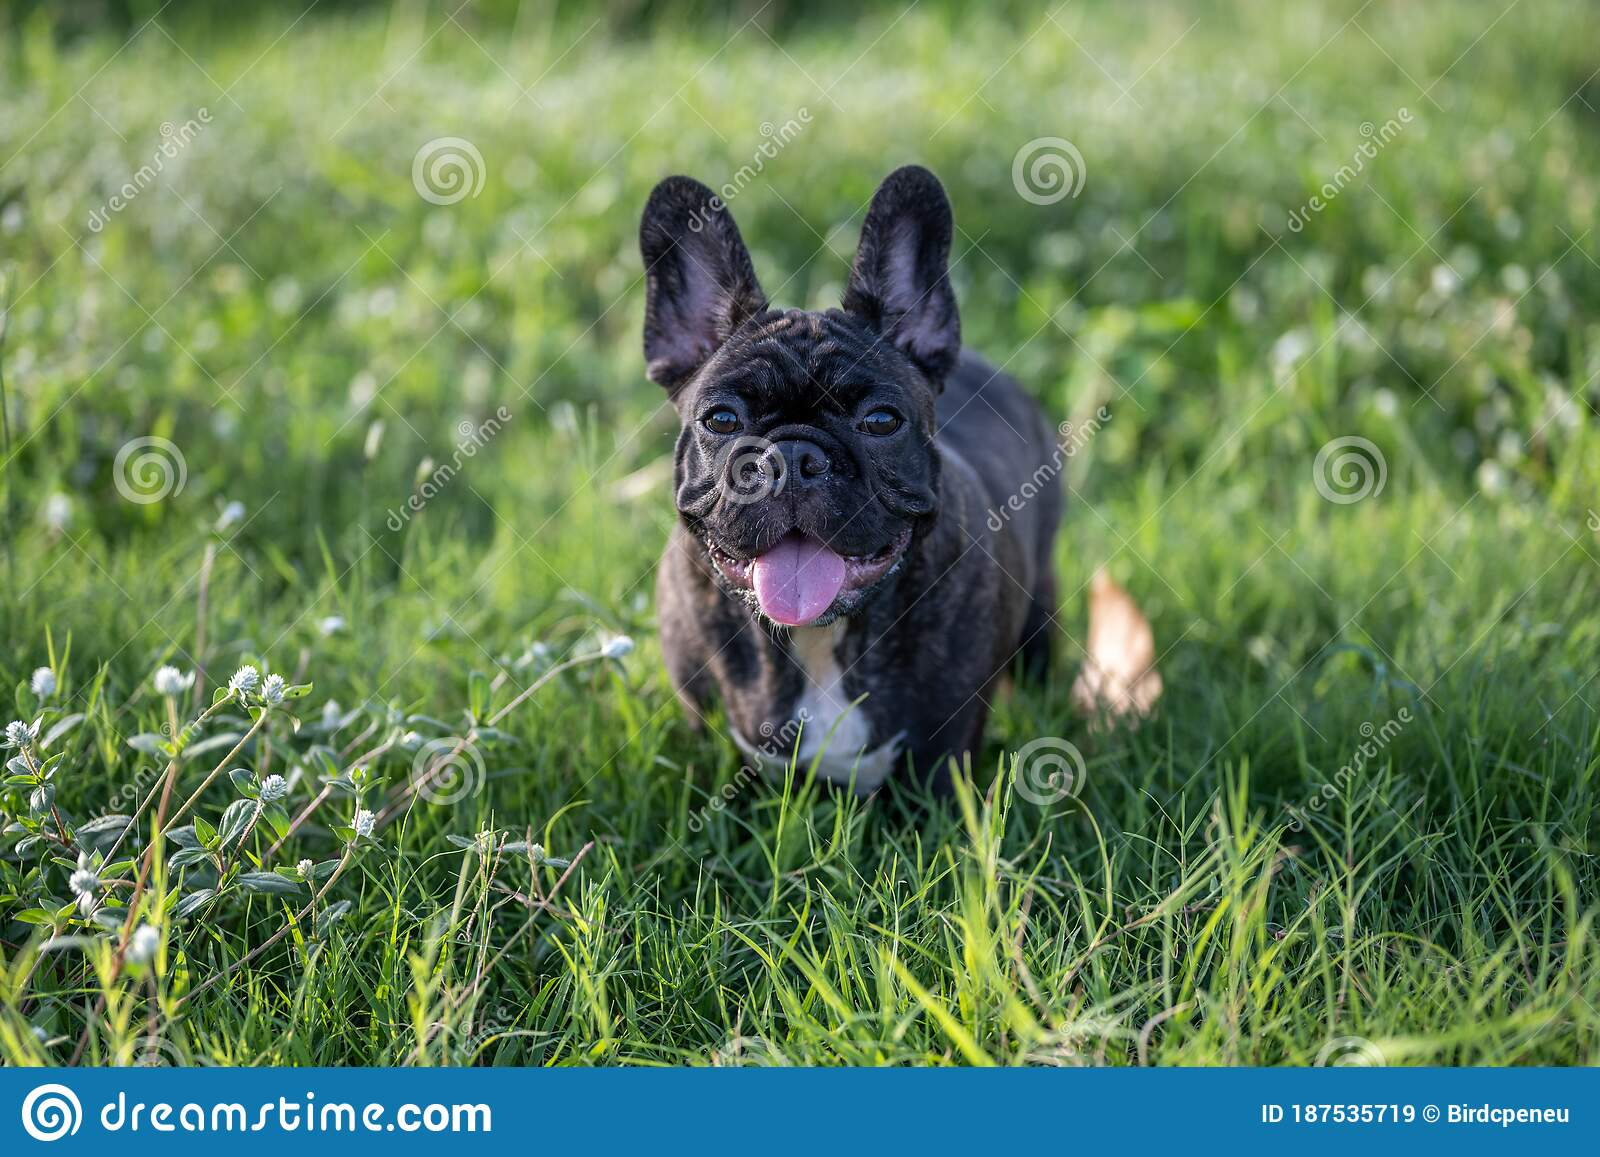 Brindle French Bulldog Puppy Standing Alone Outdoor Stock Image Image Of Outdoors Field 187535719